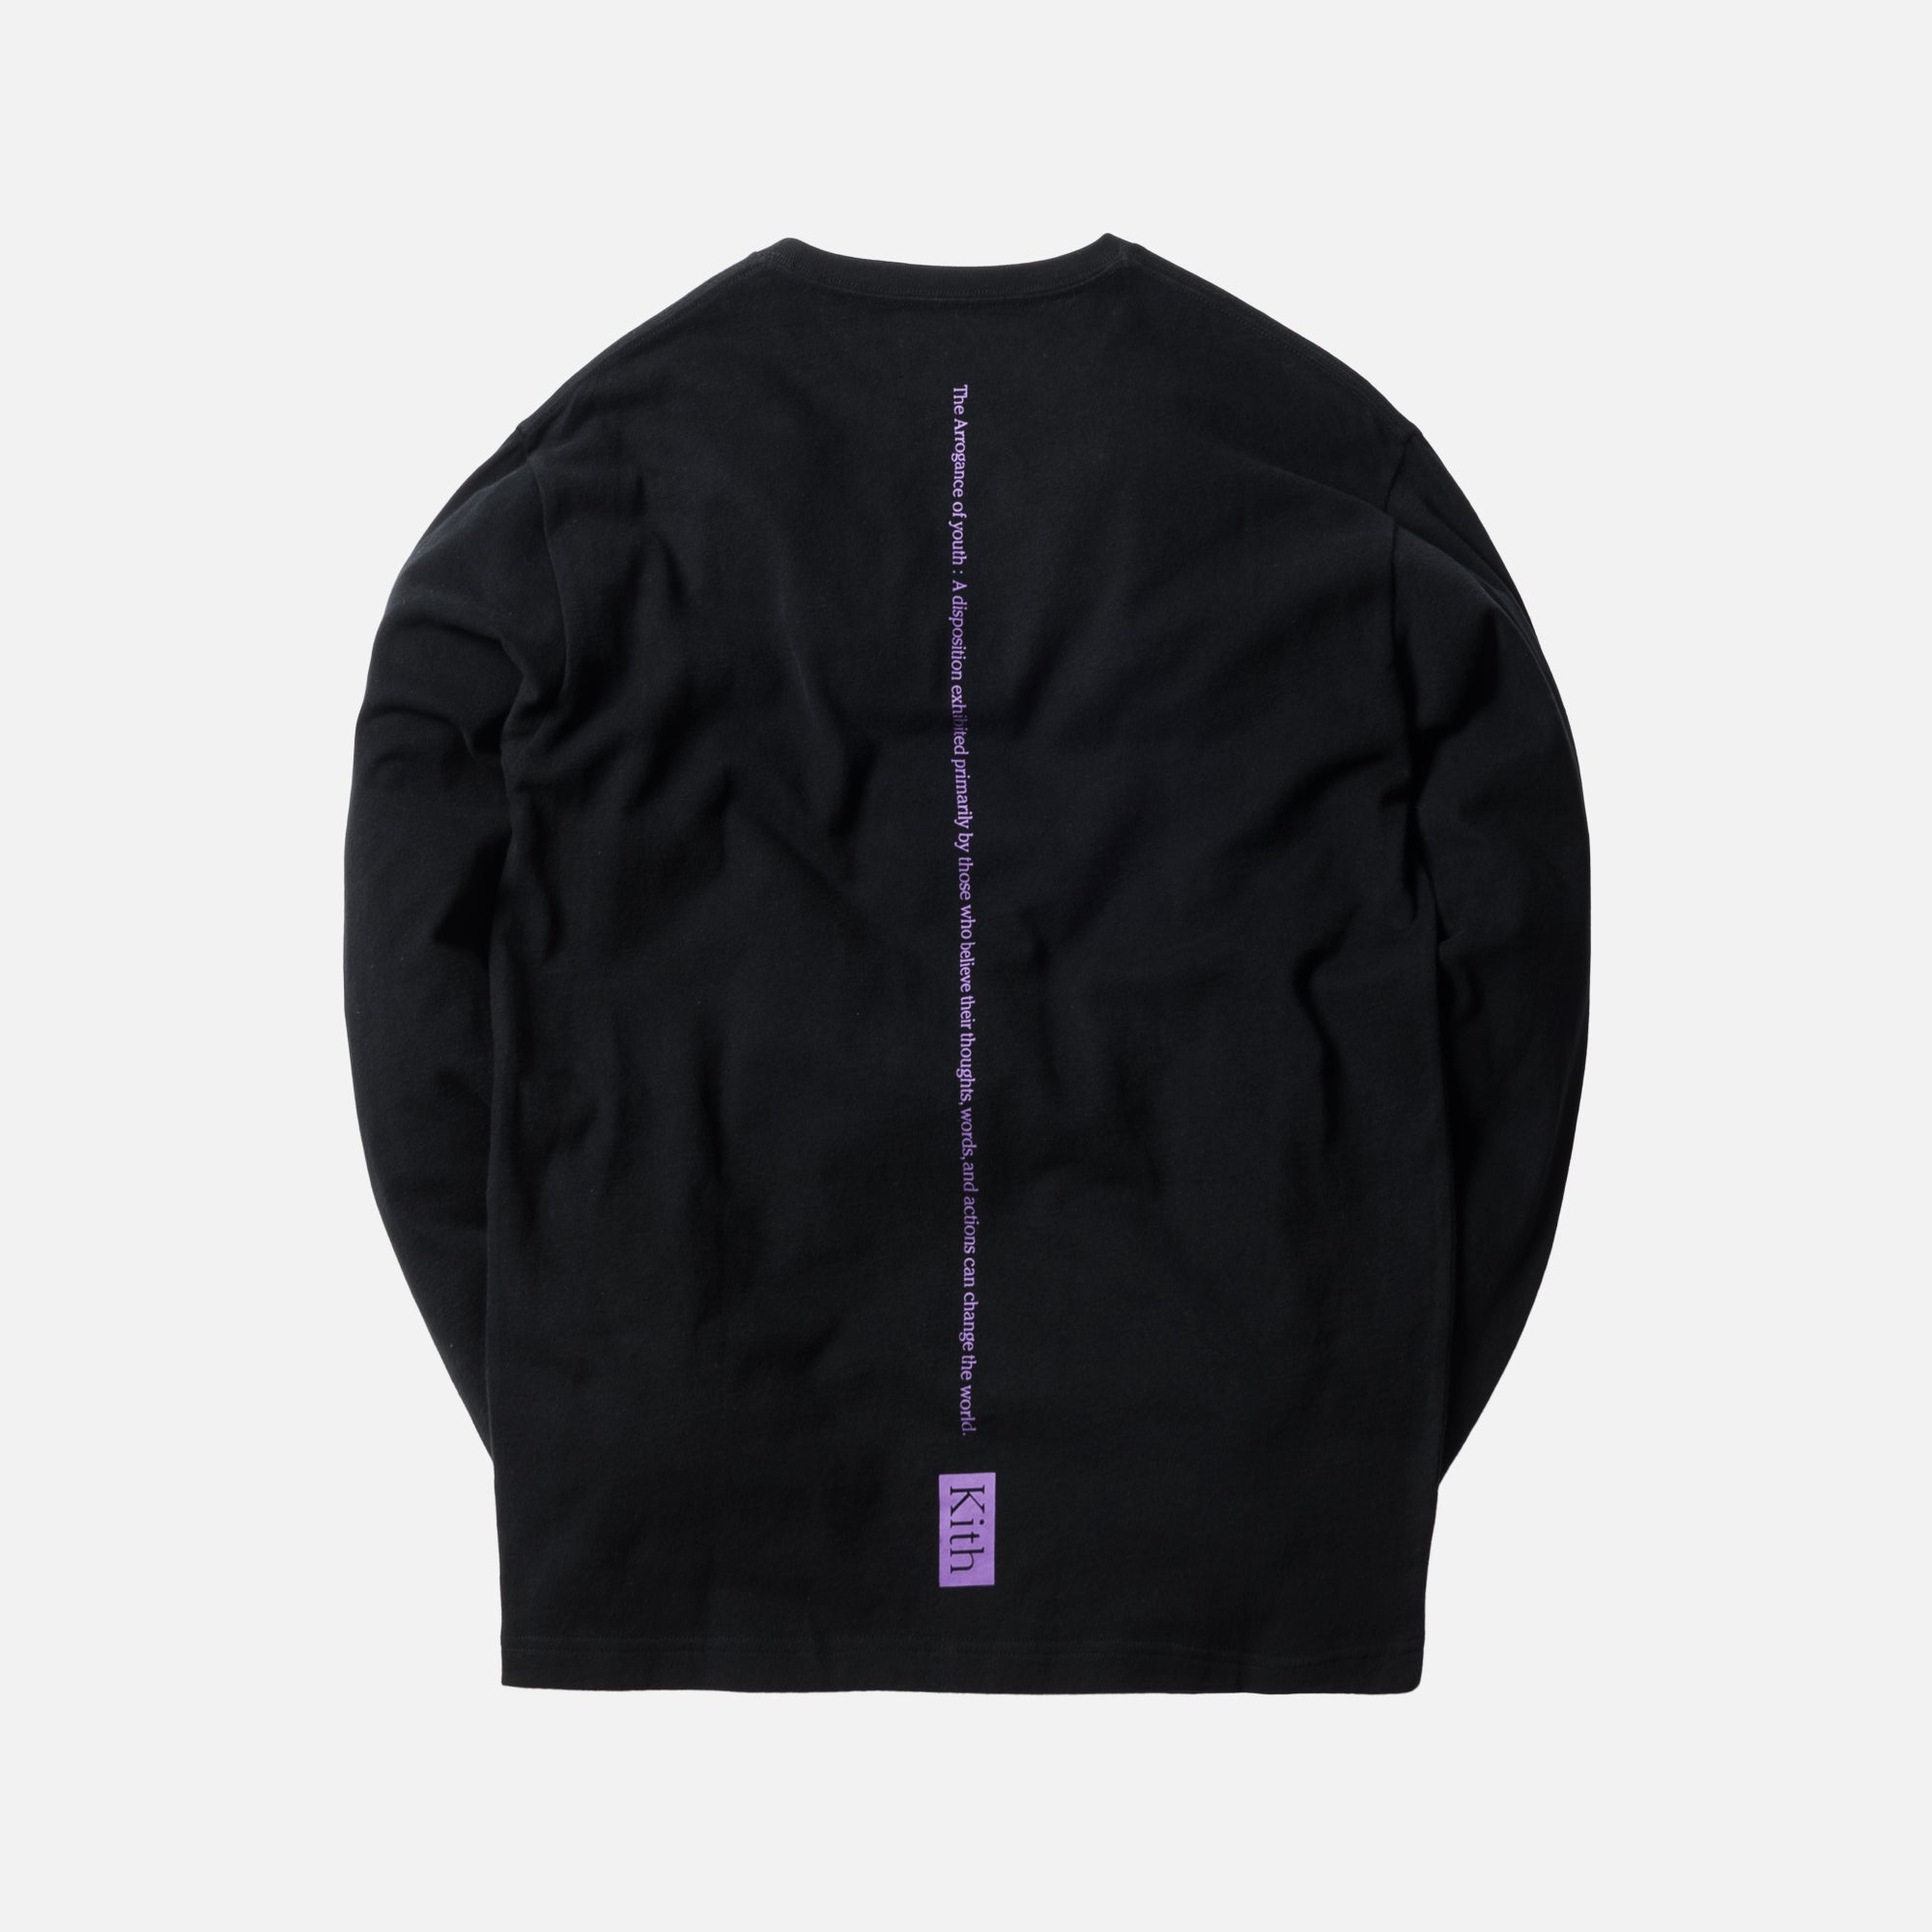 Kith Arrogance Define L/S Tee - Black